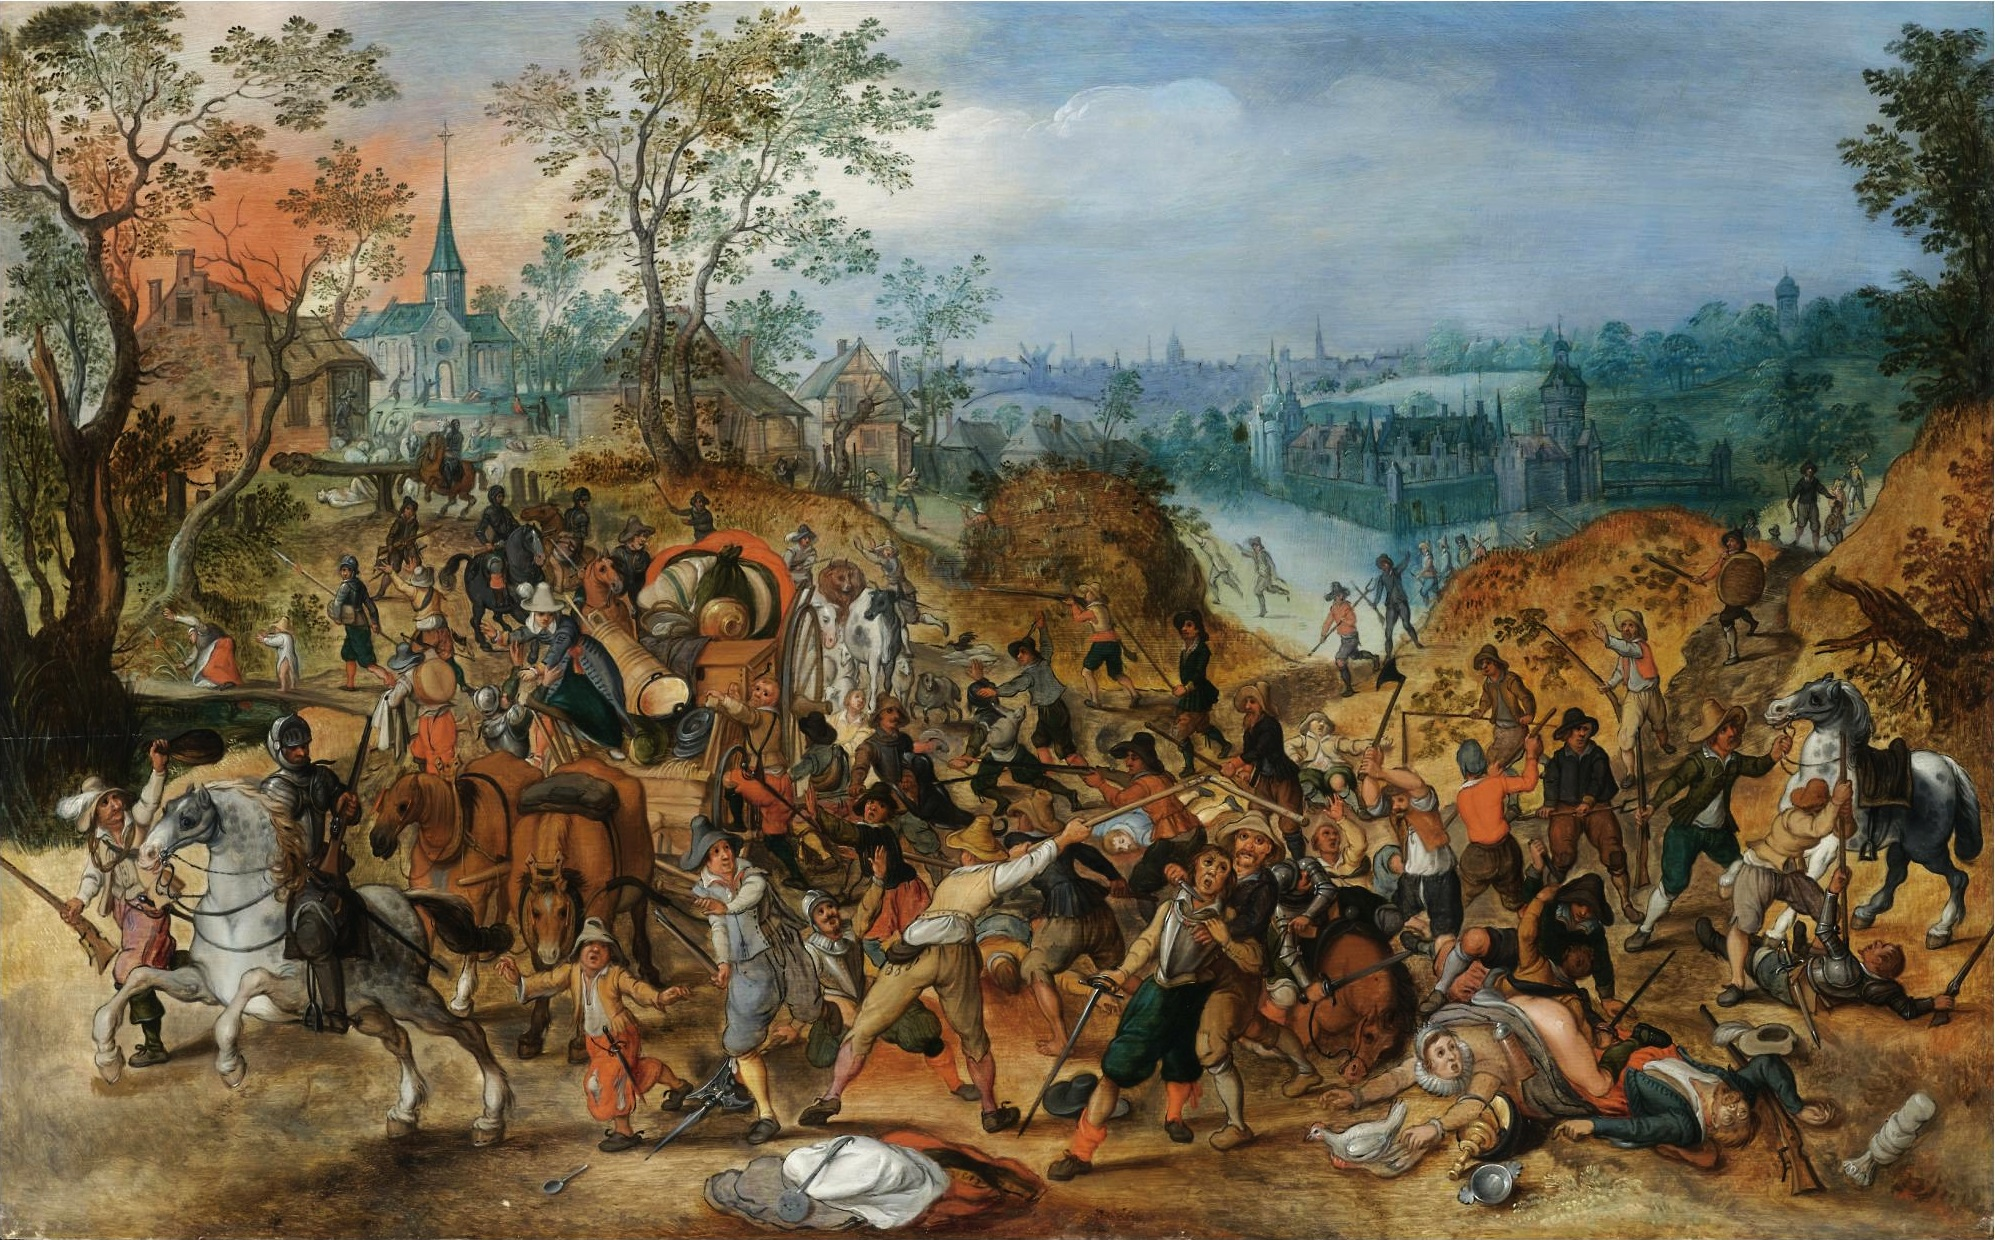 Sebastiaan_Vrancx_(studio)_-_A_landscape_with_travellers_ambushed_outside_a_small_town